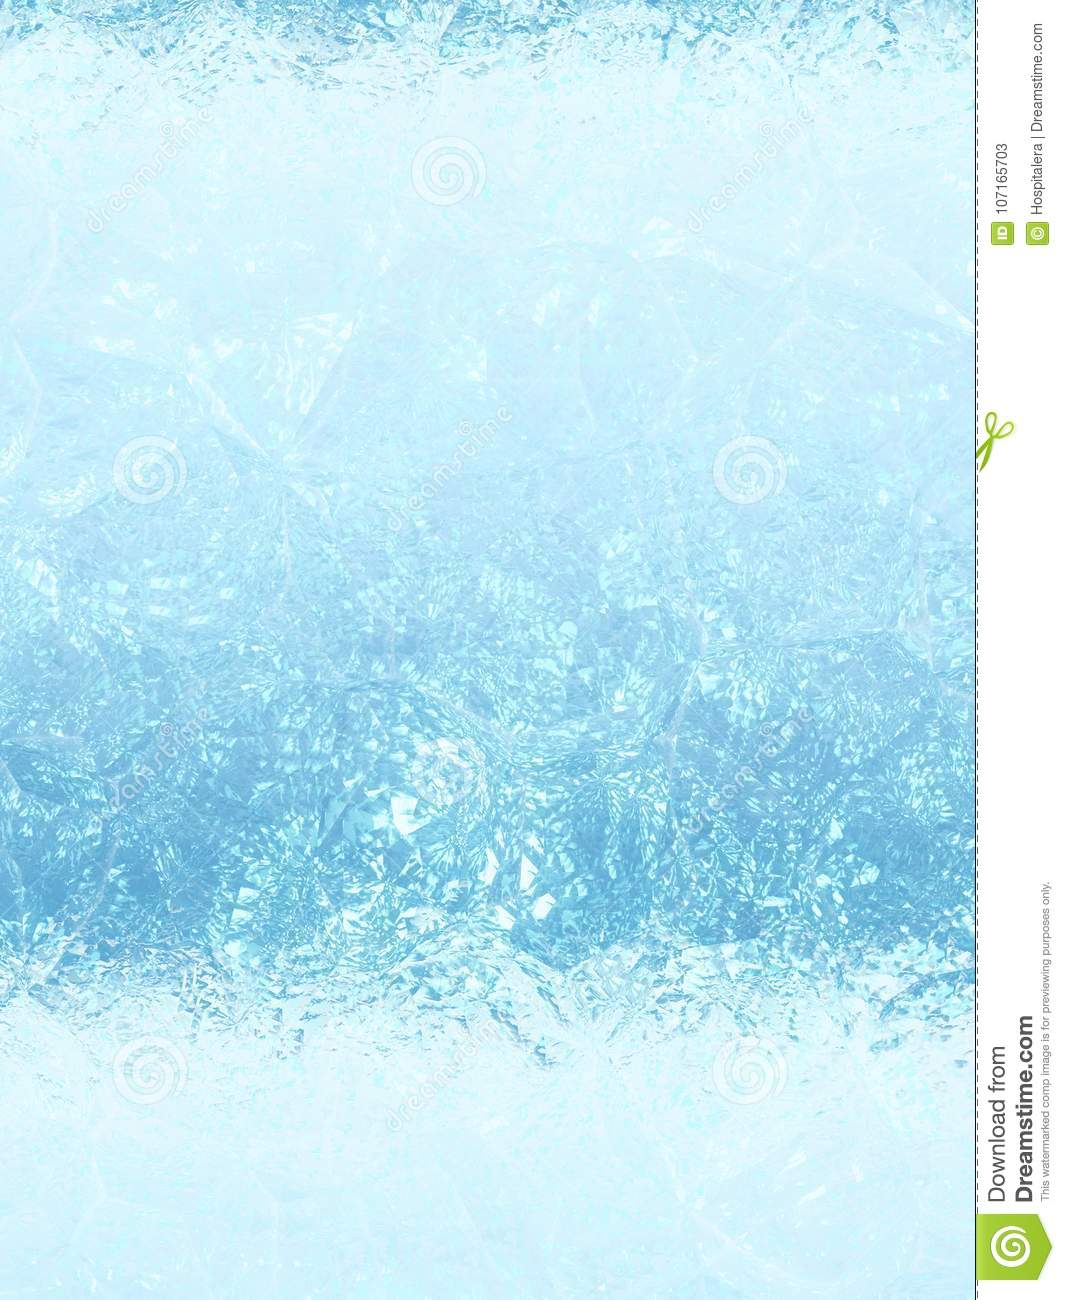 Icy Blue Background Texture Stock Image - Image of details, tones